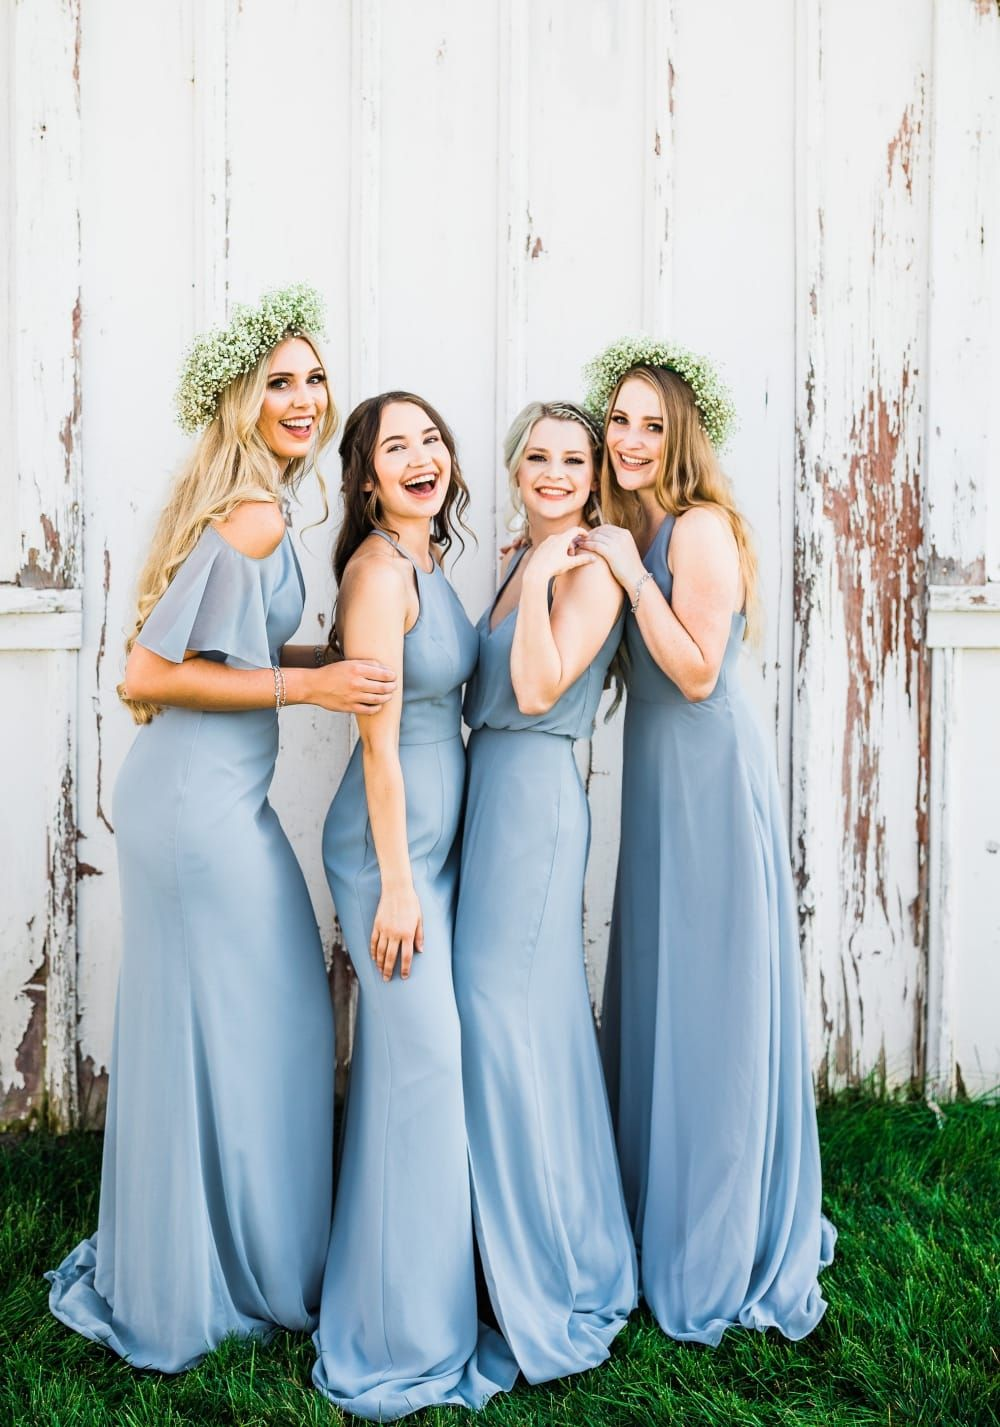 Light Blue Boho Style Affordable Dresses For Bridesmaids From Thread Bri Affordable Bridesmaid Dresses Inexpensive Bridesmaid Dresses Modern Bridesmaid Dresses